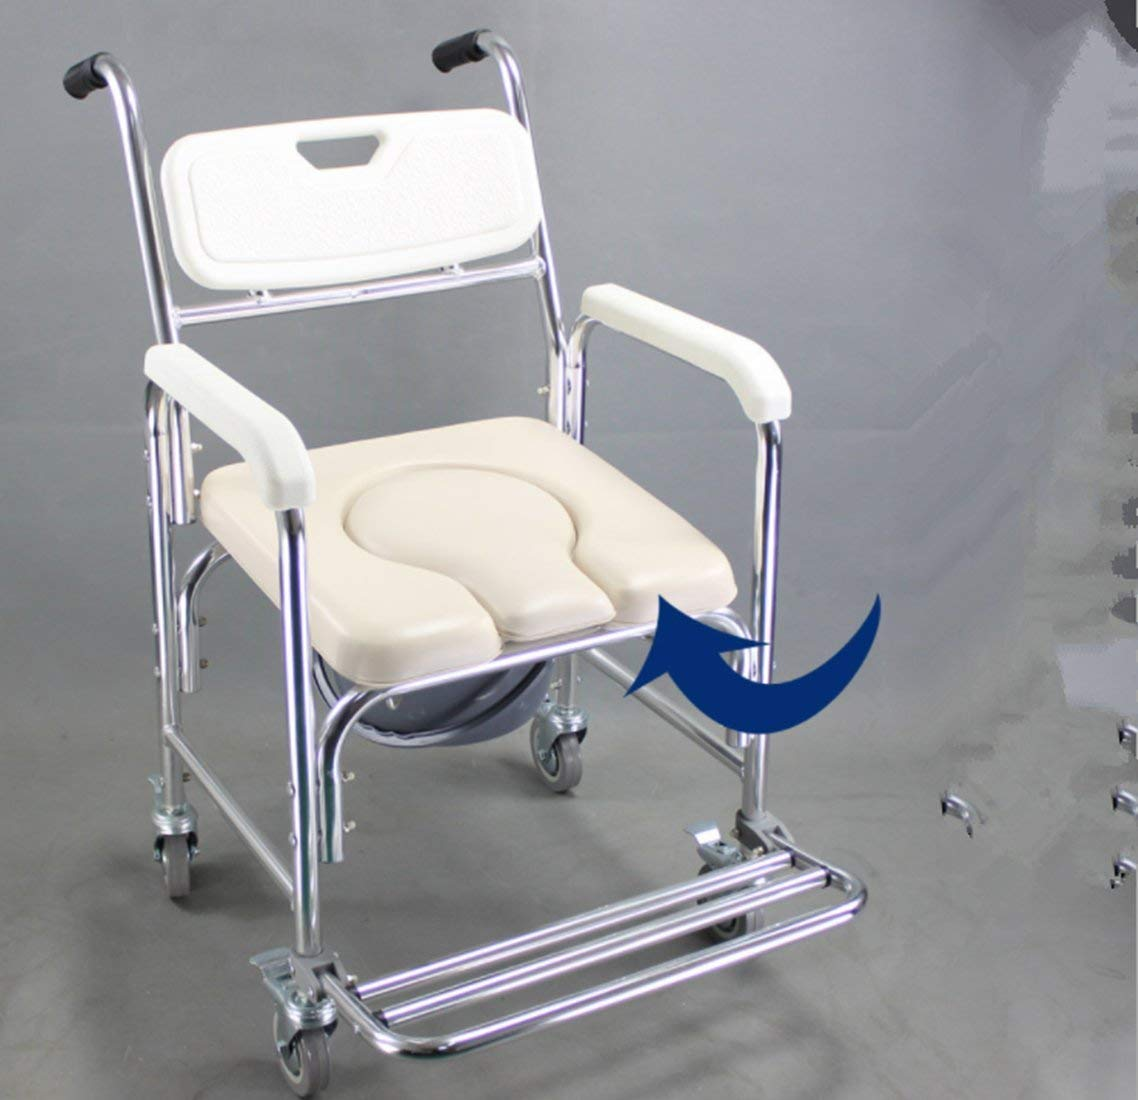 DDPP Bathroom with armrests bathroom shower chair with roller shower chair (4 wheel brakes), toilet seat back and seat,1